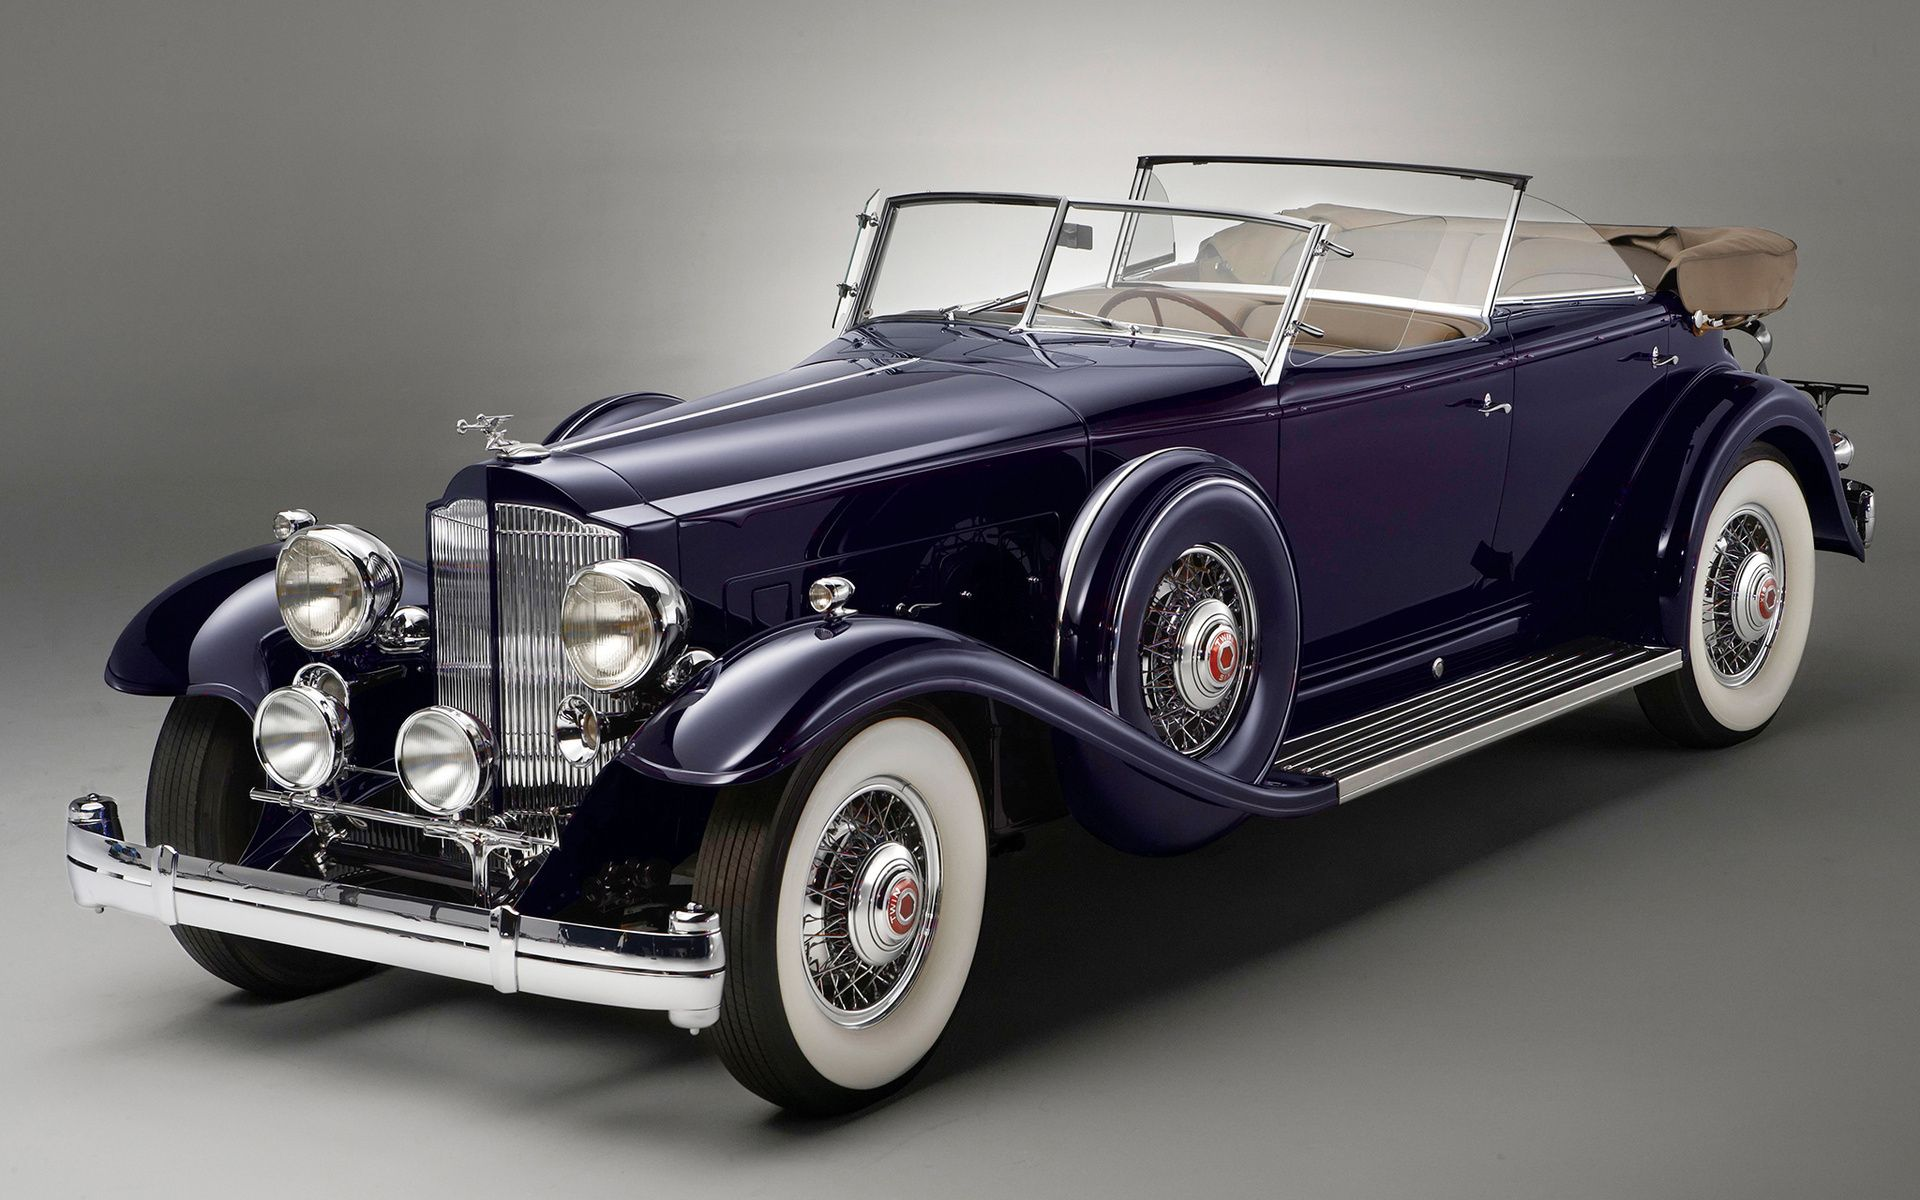 Vintage Cars | Vintage Cars Images, Pictures, Wallpapers on BsnSCB Graphics